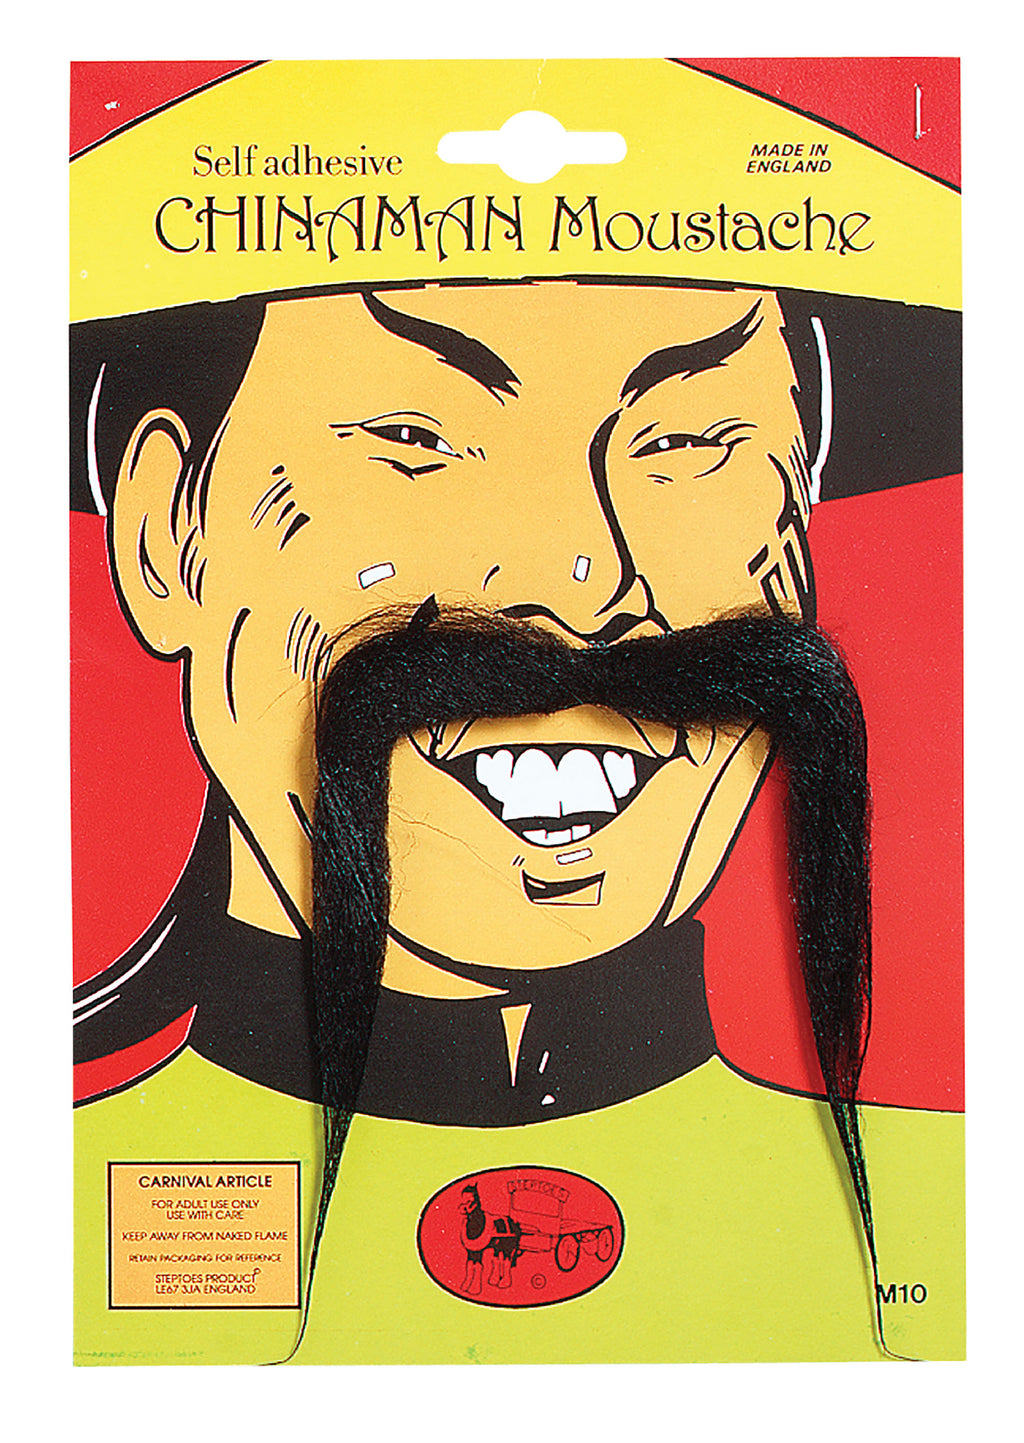 Chinaman Moustache